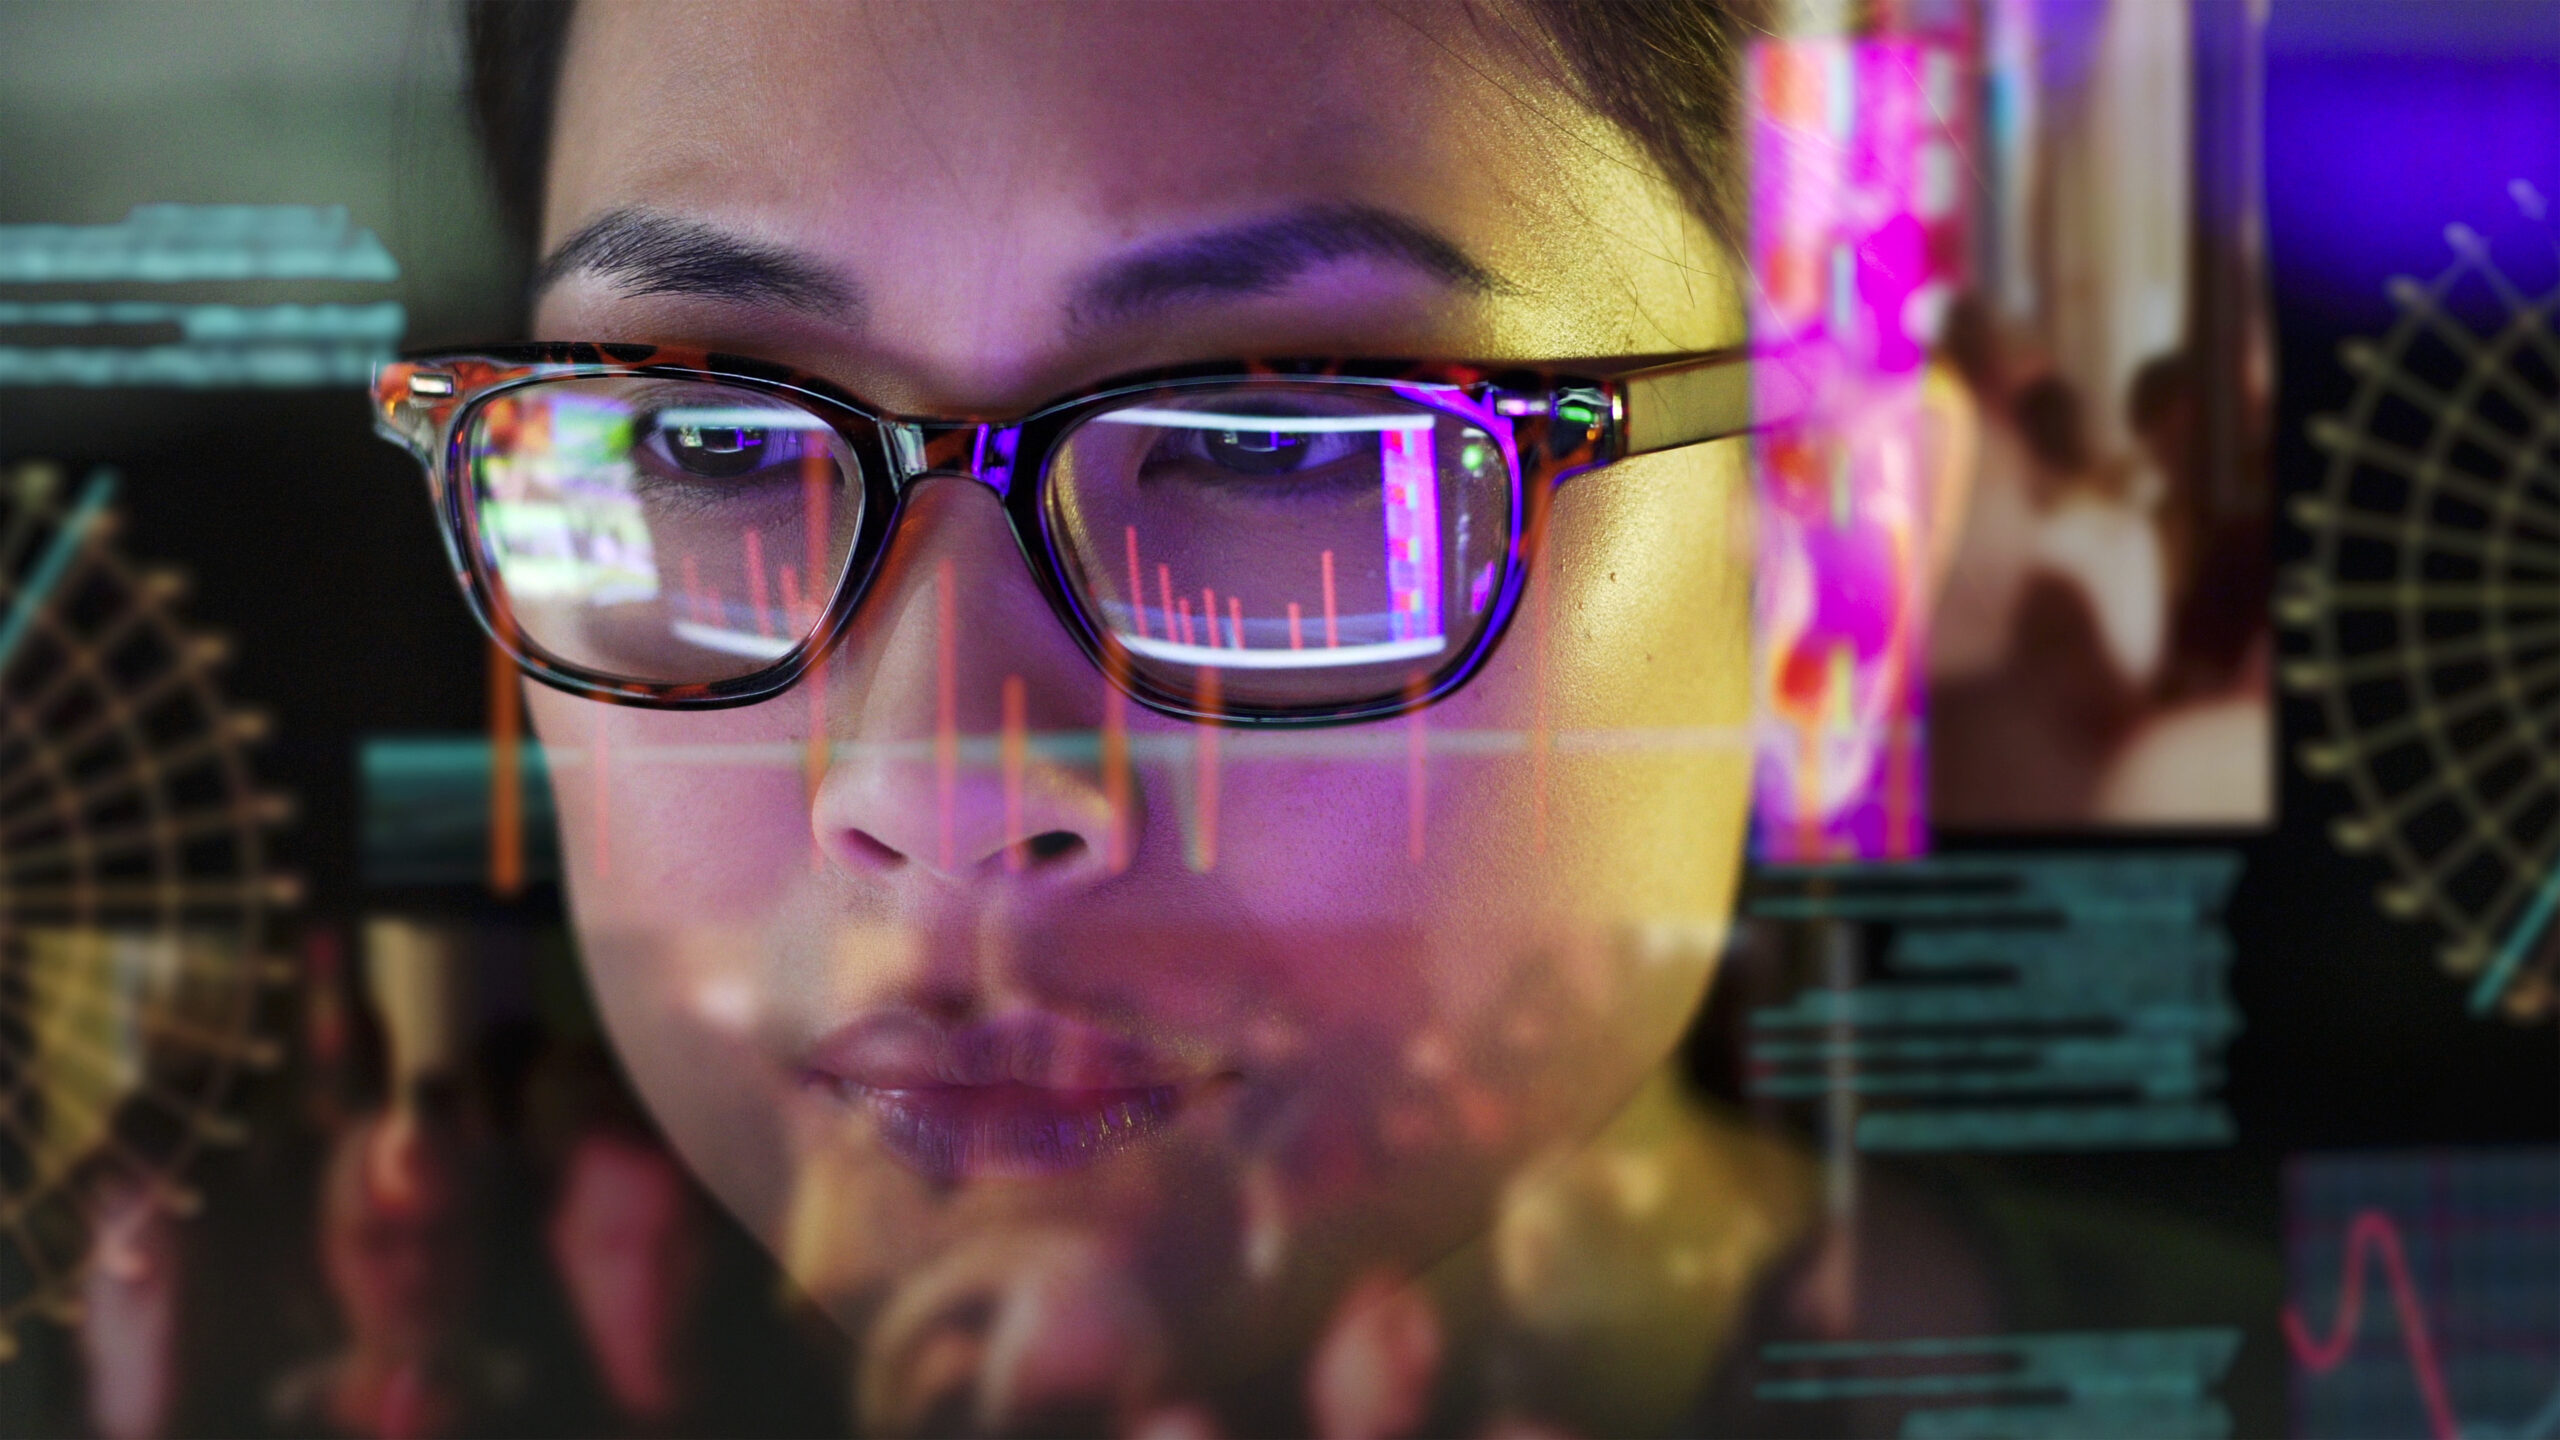 Close up stock photo of an Asian woman carefully studying computer data